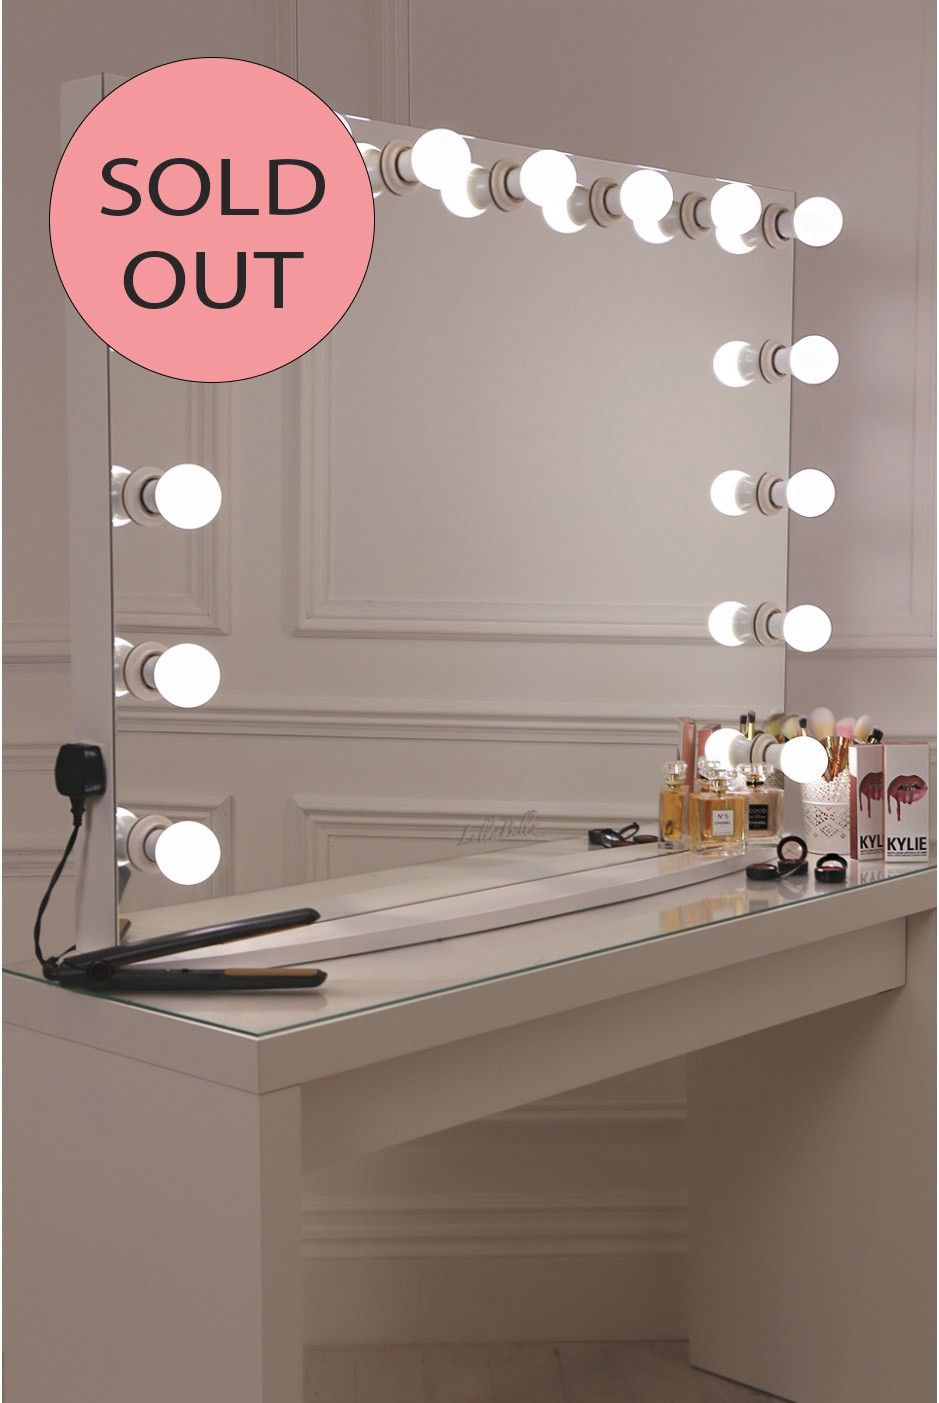 15 Frosted Bulb Hollywood Mirror With Crisp White Finish D 233 Co Chambre Ikea Deco Chambre Deco